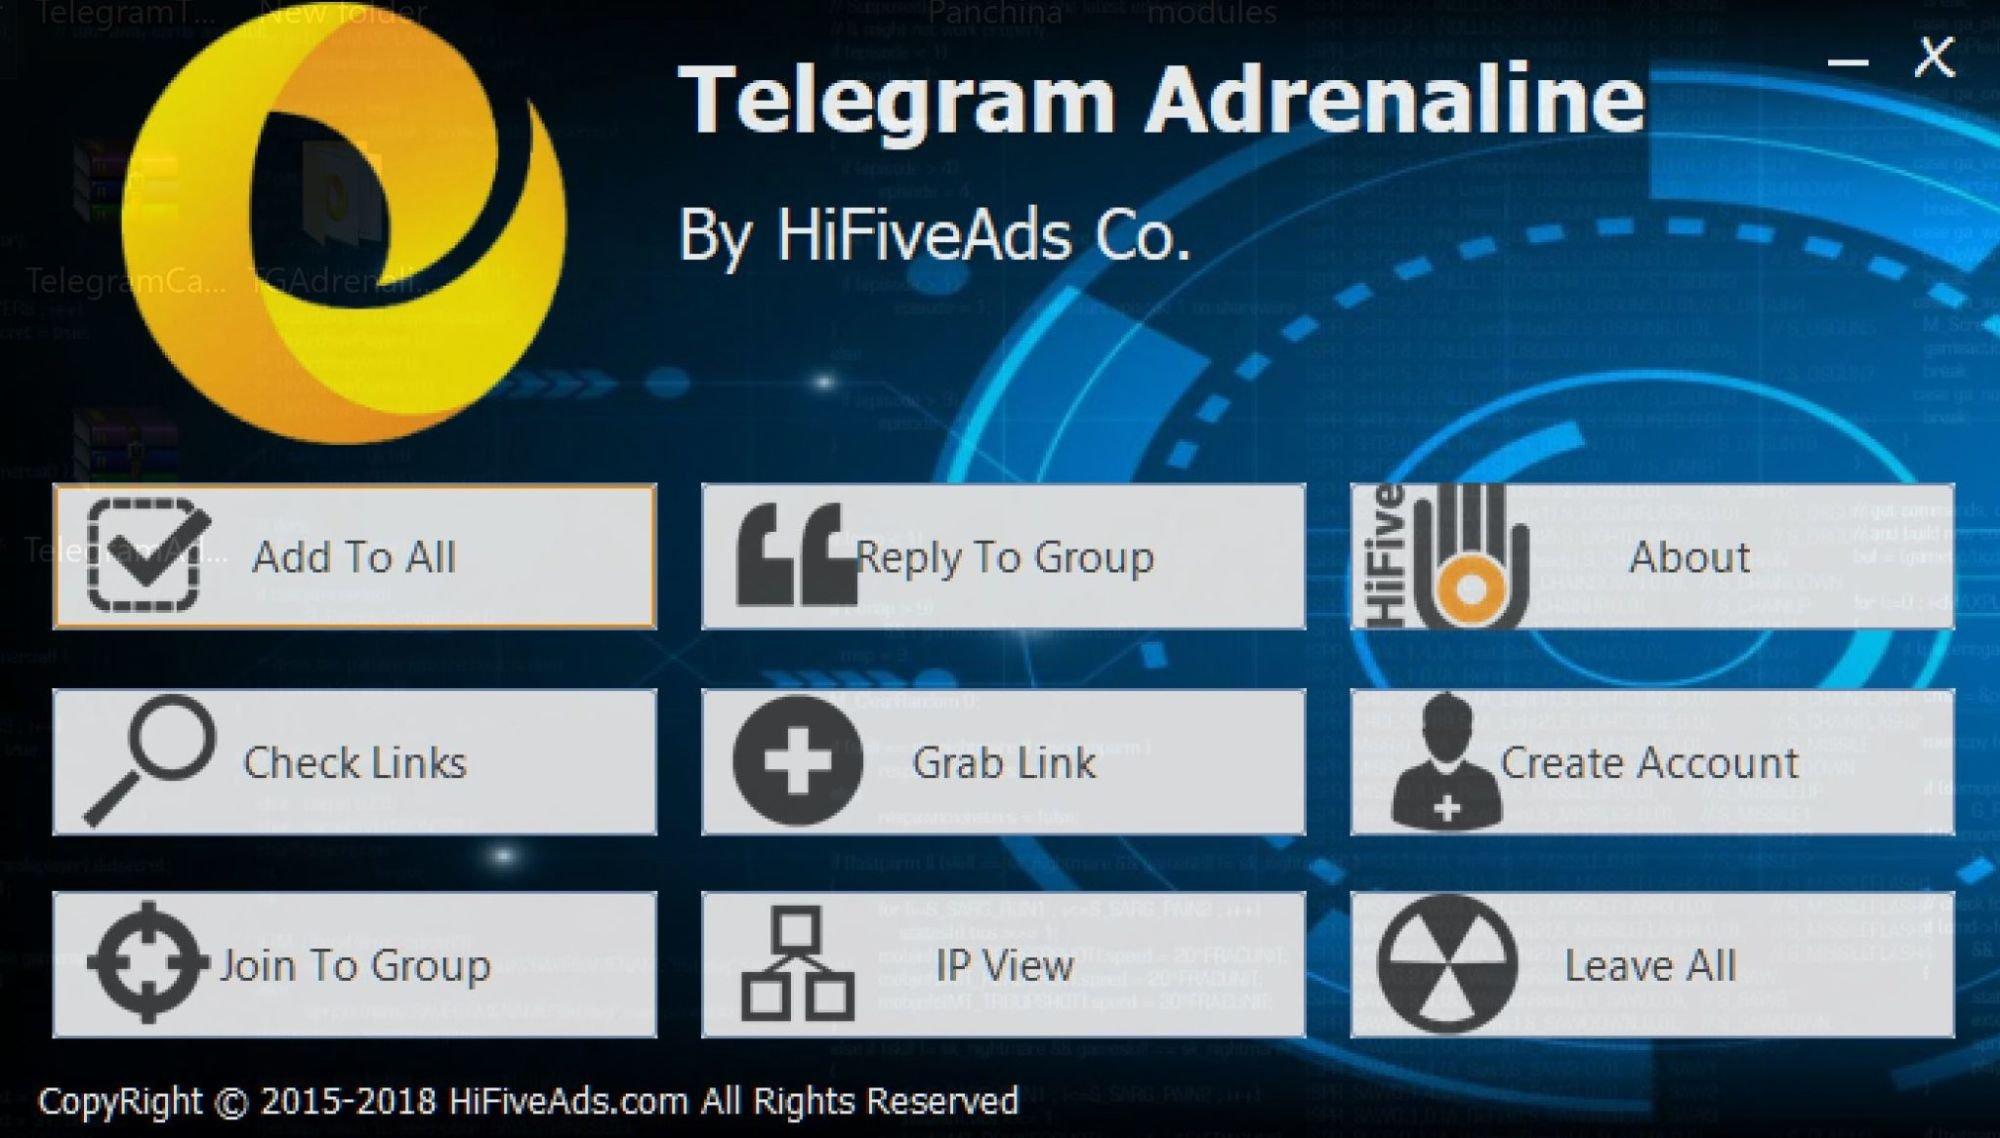 telegram adrenaline